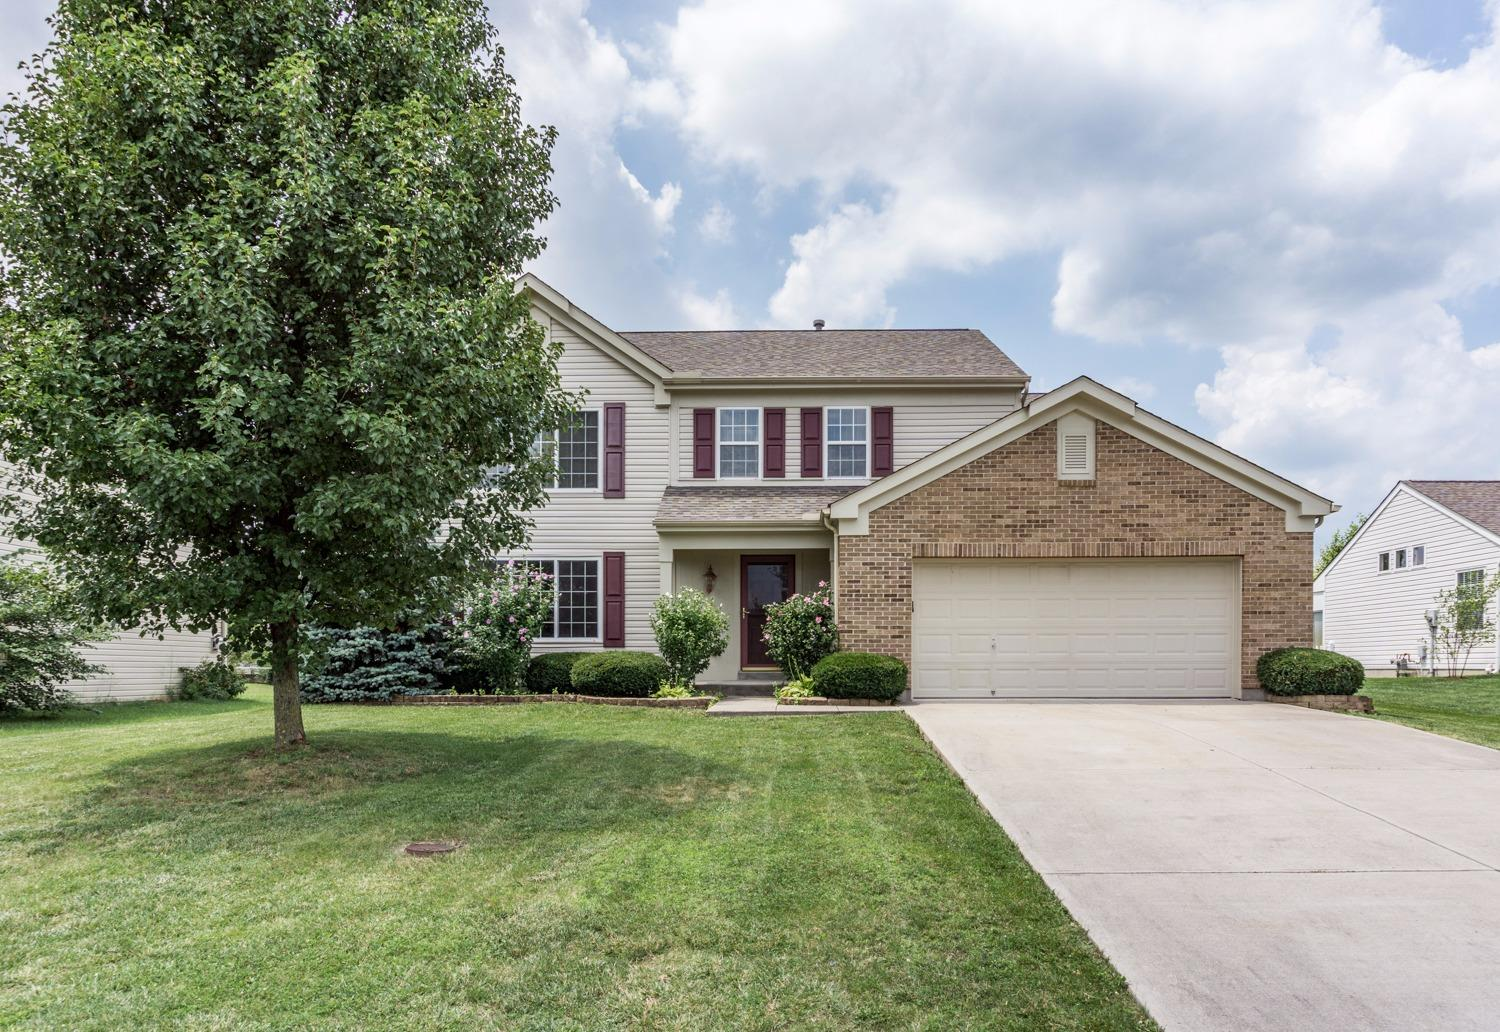 927 Pond Court, Lebanon, OH 45036